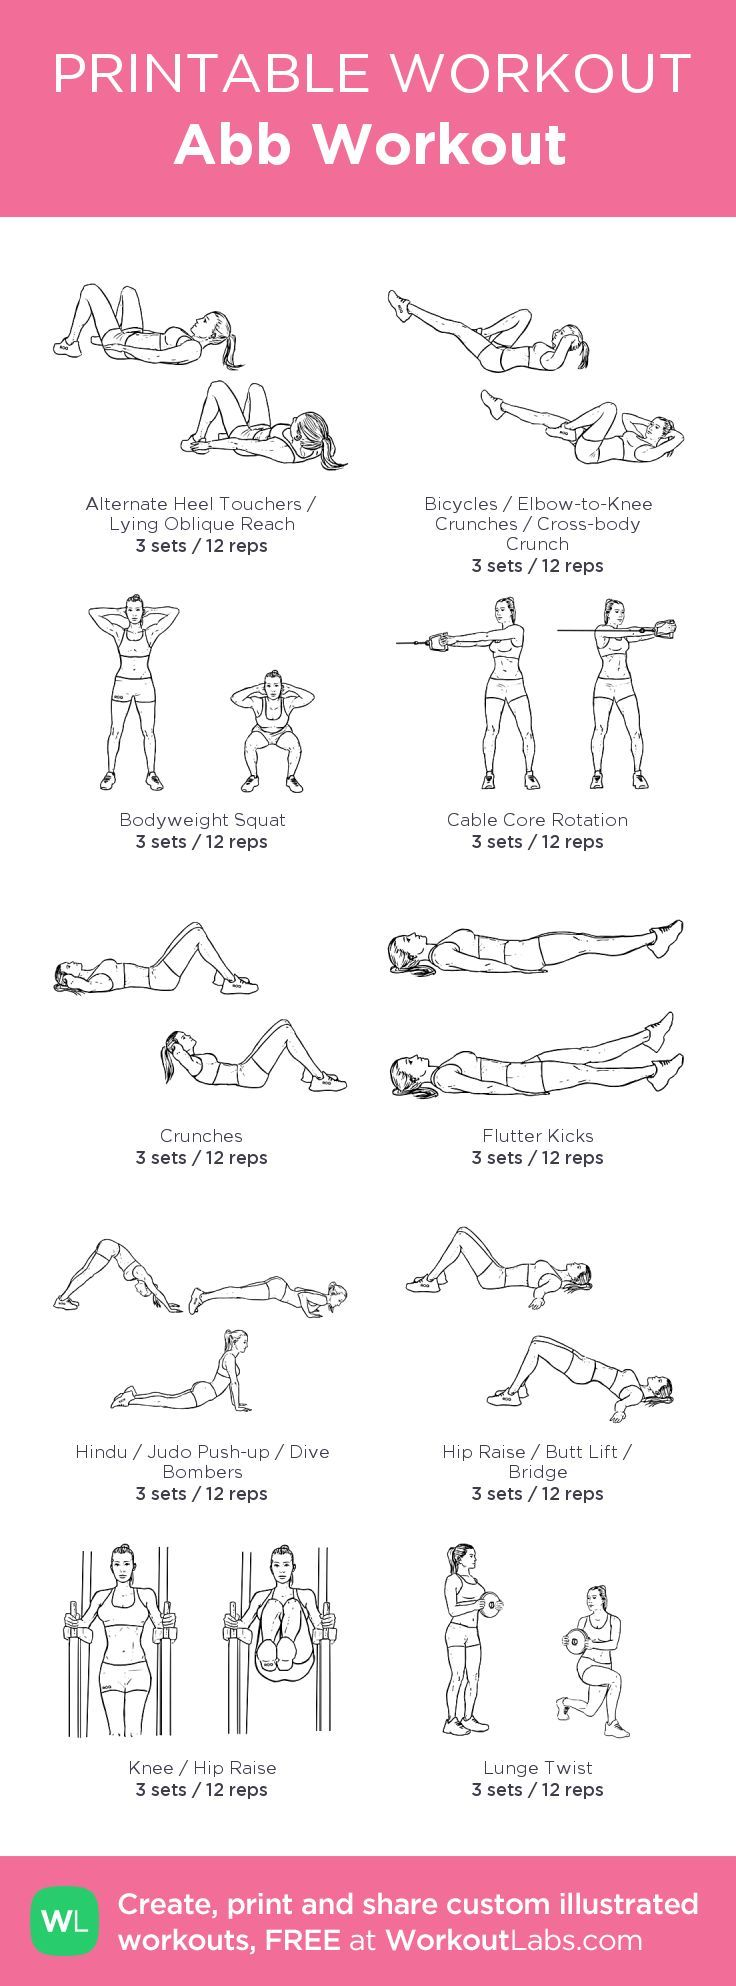 Abb Workout: my visual workout created at WorkoutLabs.com • Click through to ….